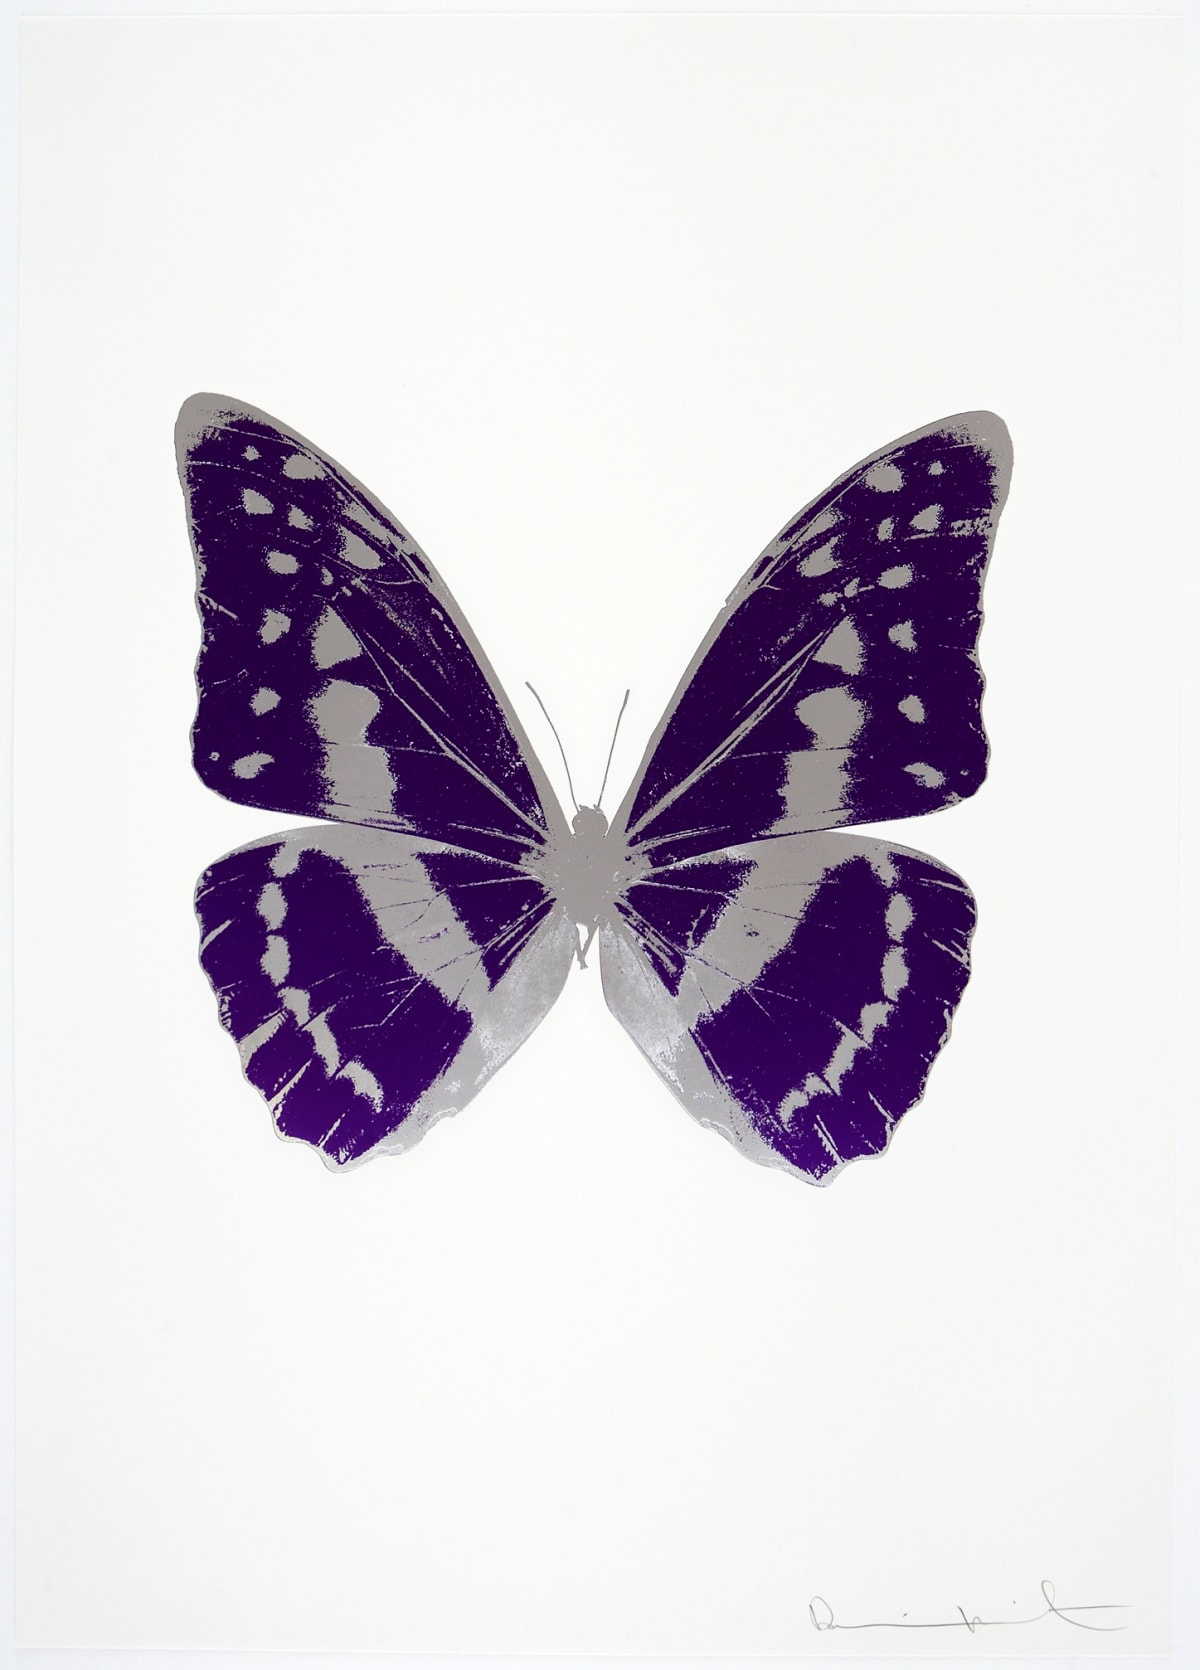 Damien Hirst The Souls III - Imperial Purple/Silver Gloss/Silver Gloss, 2010 2 colour foil block on 300gsm Arches 88 archival paper. Signed and numbered. Published by Paul Stolper and Other Criteria 72 x 51cm OC7967 / 660-70 Edition of 15